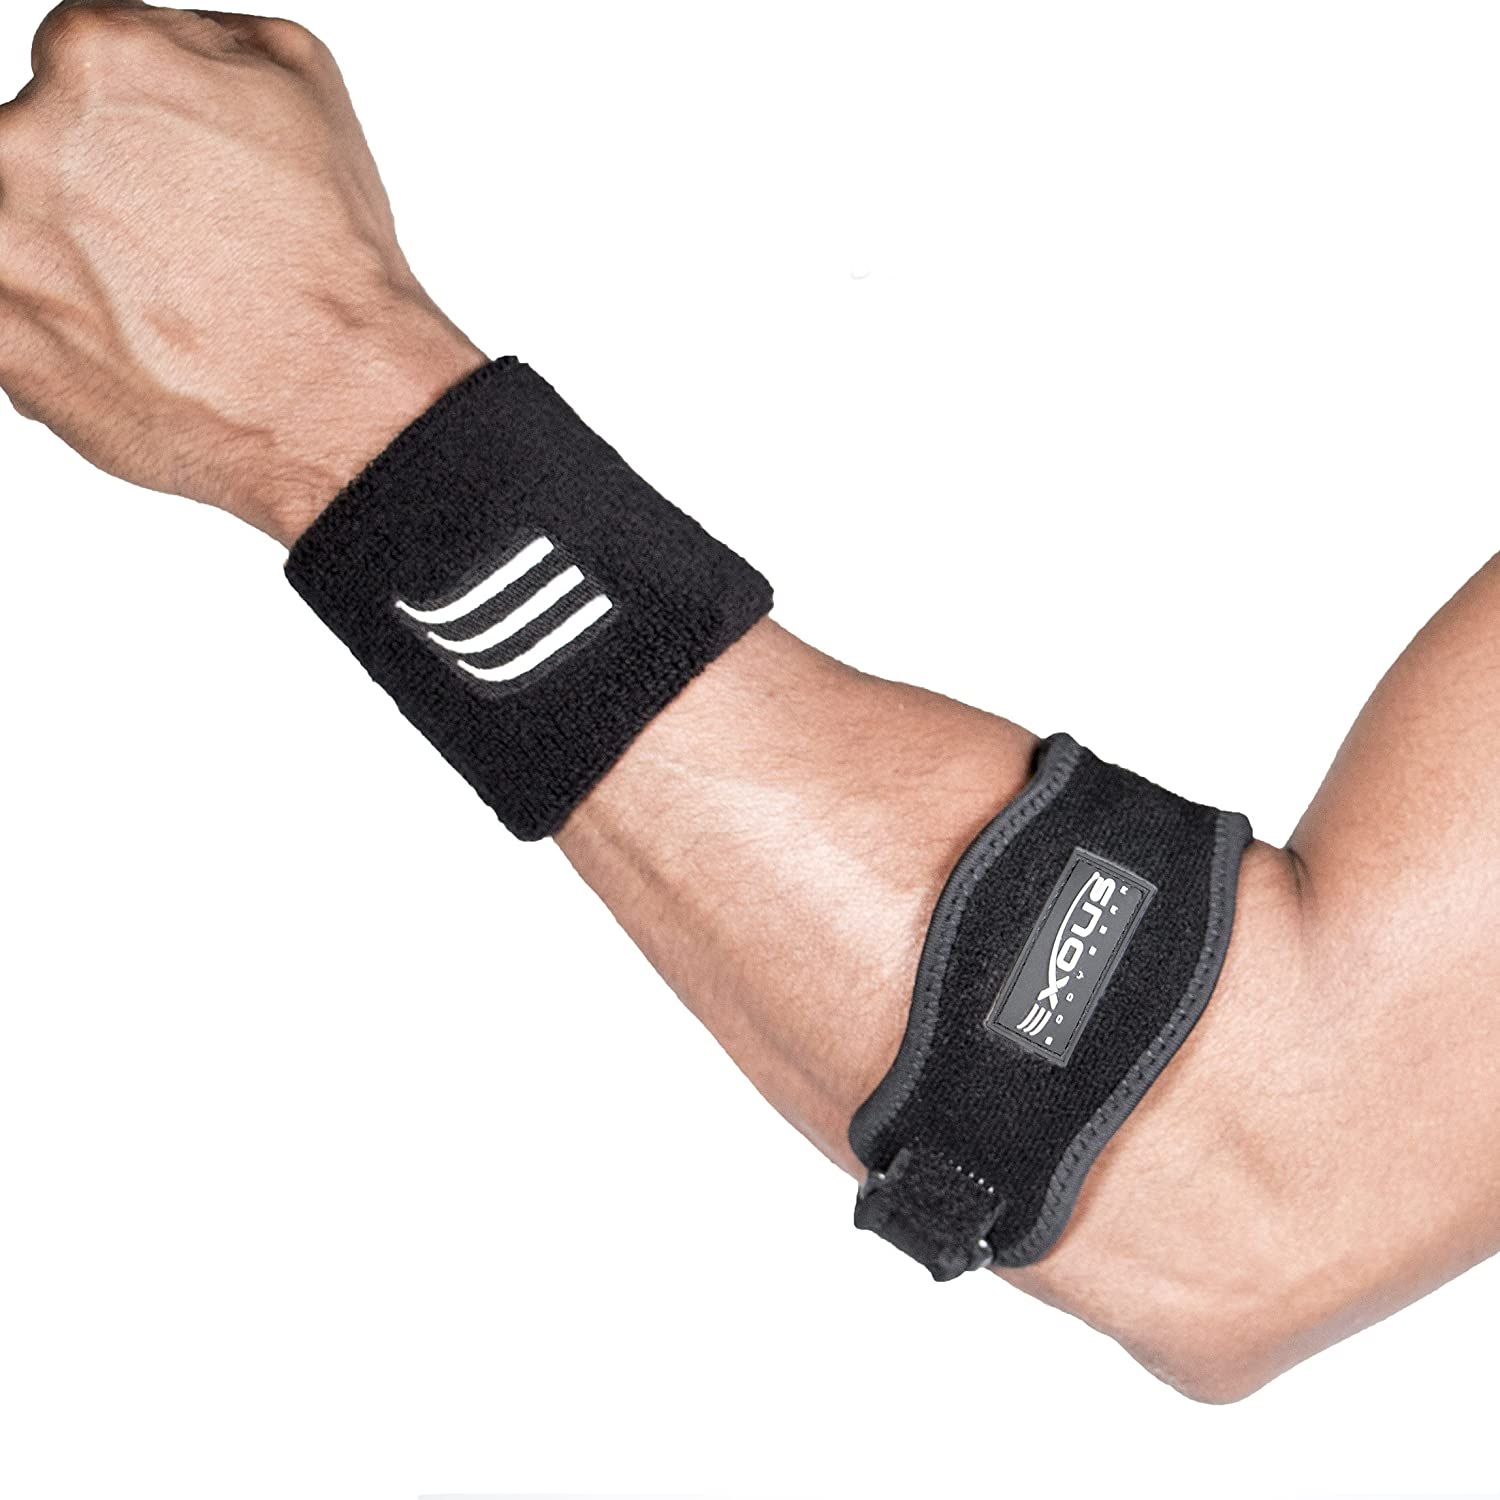 nike tennis elbow band instructions